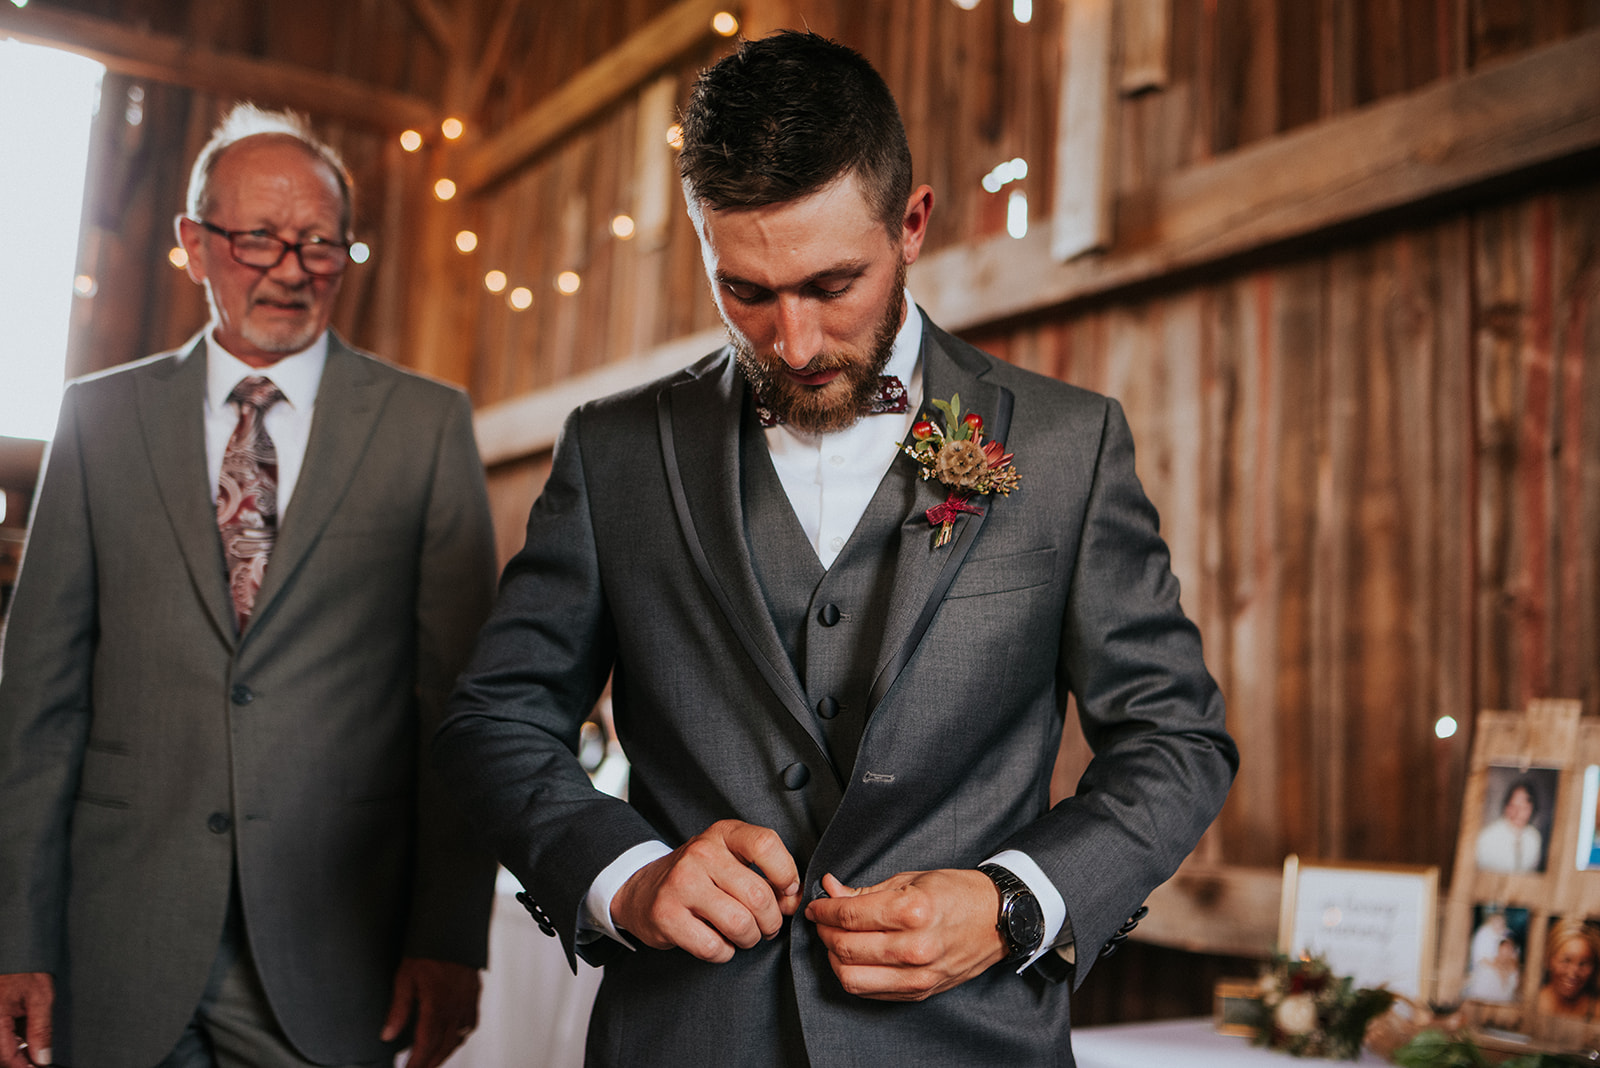 overthevineswisconsinwedding_0446.jpg